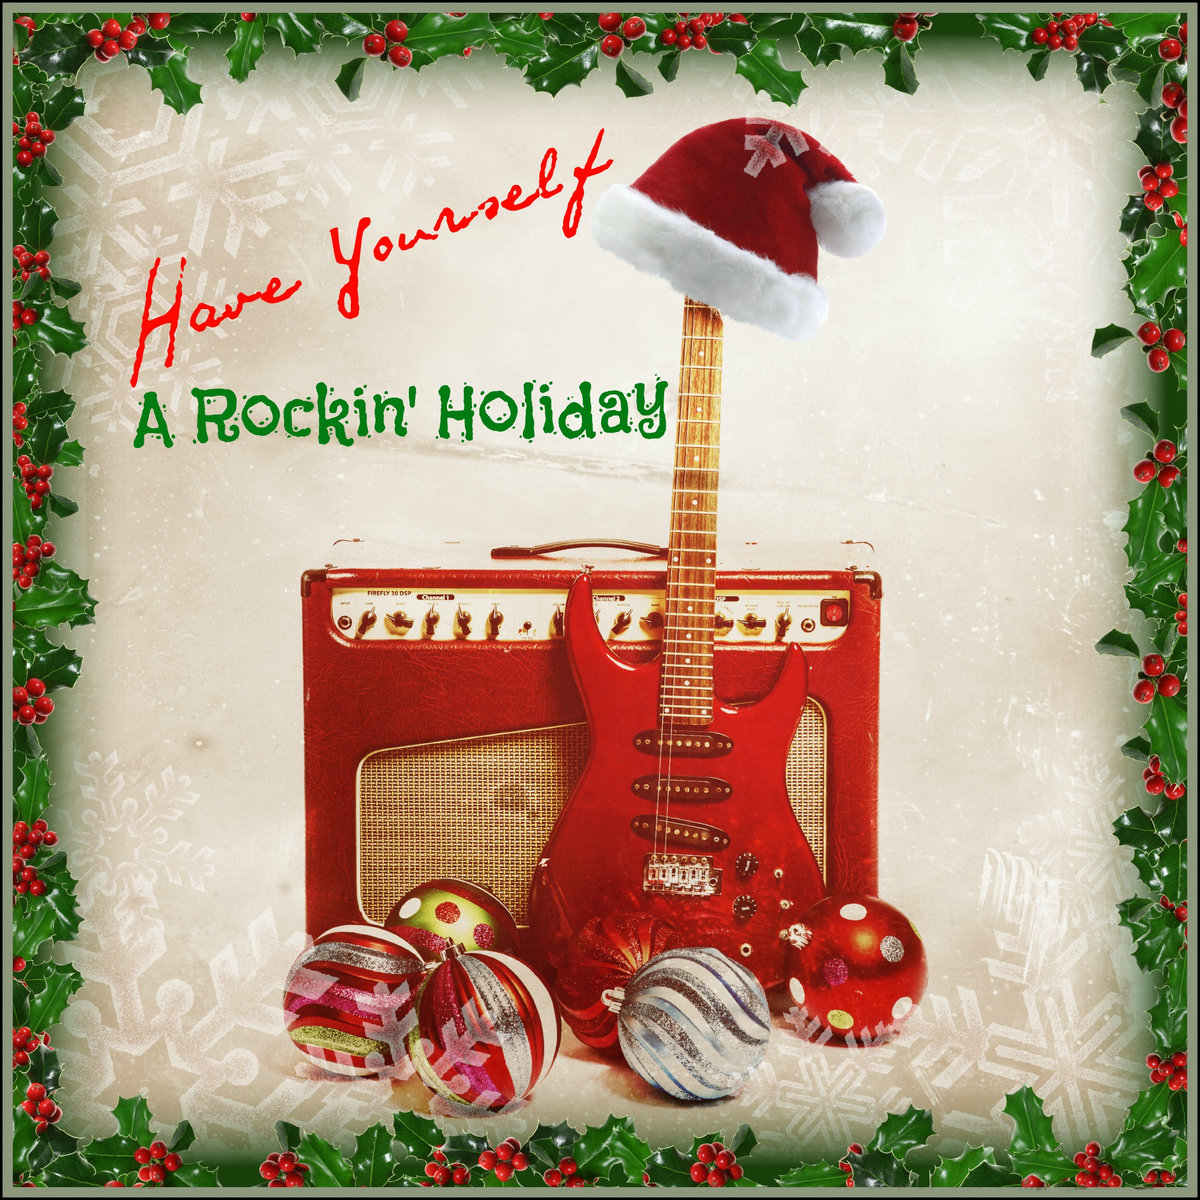 Have Yourself A Rockin' Holiday | Heavy Hitters Music